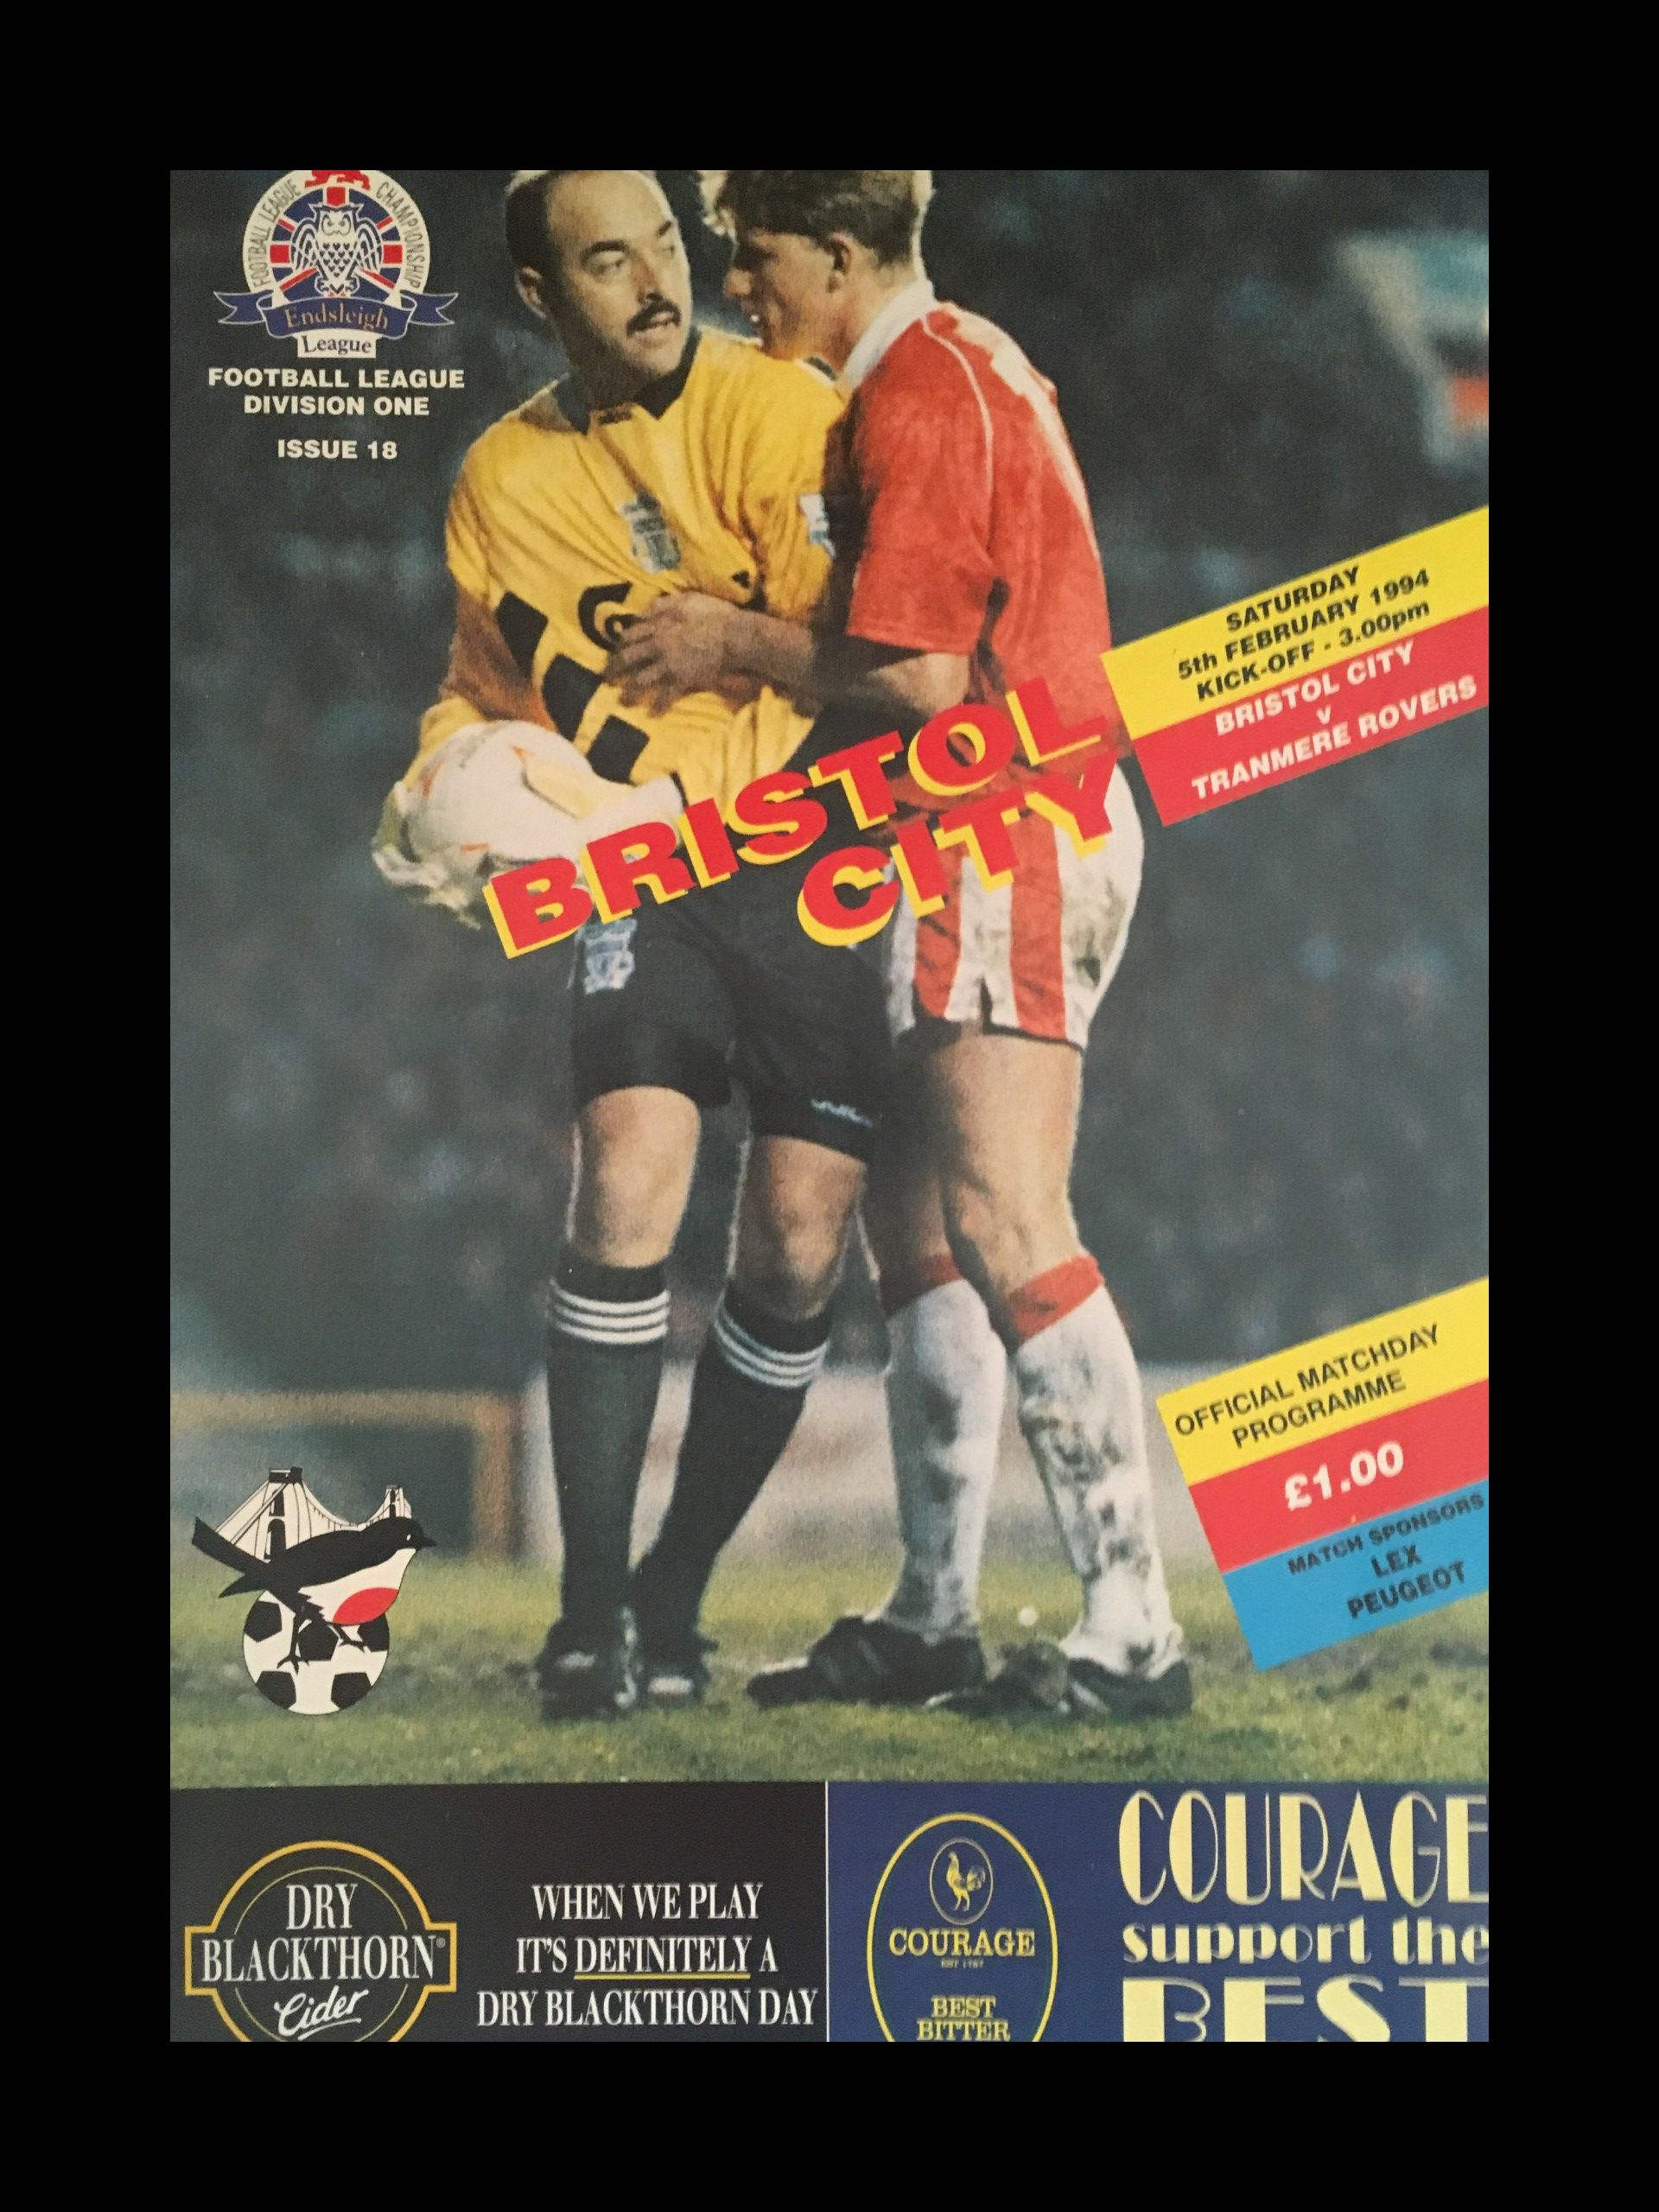 Bristol City v Tranmere Rovers 05-02-1994 Programme